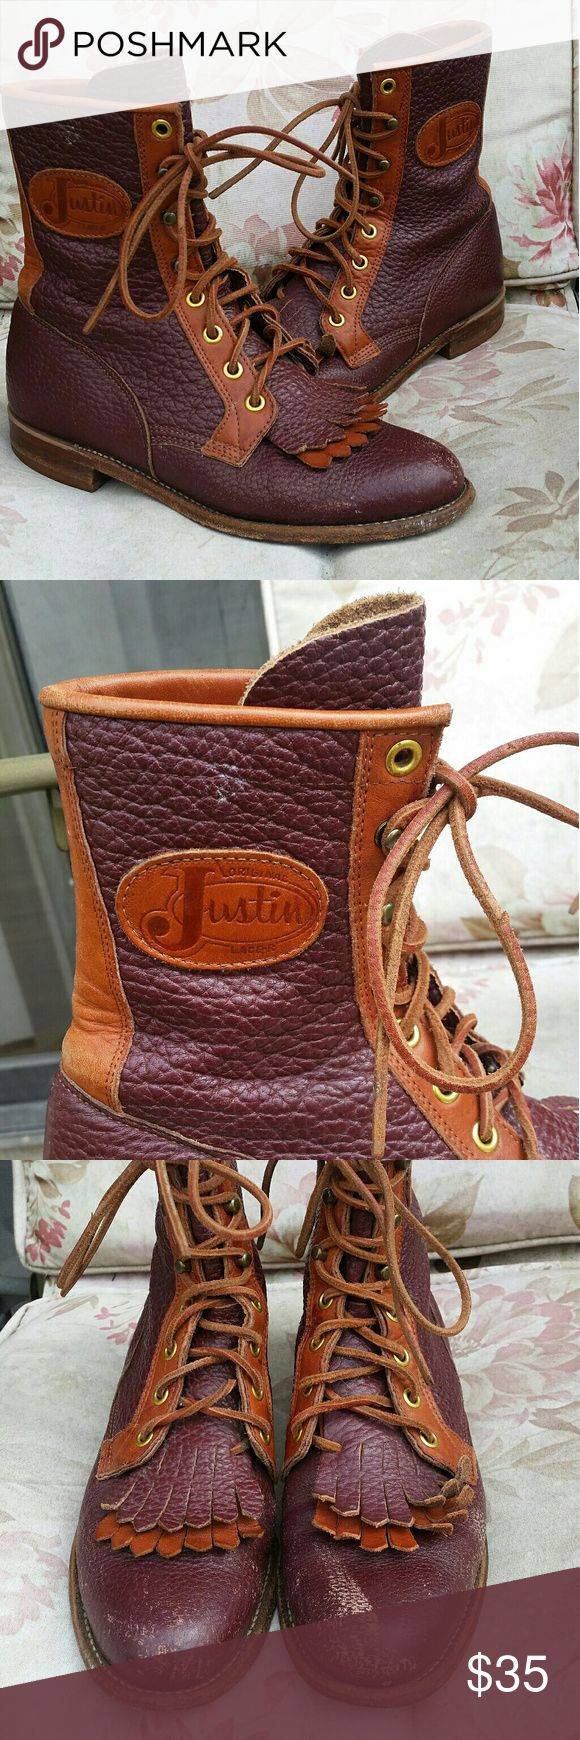 Vintage Justin roper boots These vintage burgundy ropers are beautiful!  Would look great with leggings and a tunic top.  There are some discolorations on the outside but other than that are in great condition.  5.5 in men so a 7 in women's and is a little narrow in the toe. Justin Boots Shoes Lace Up Boots